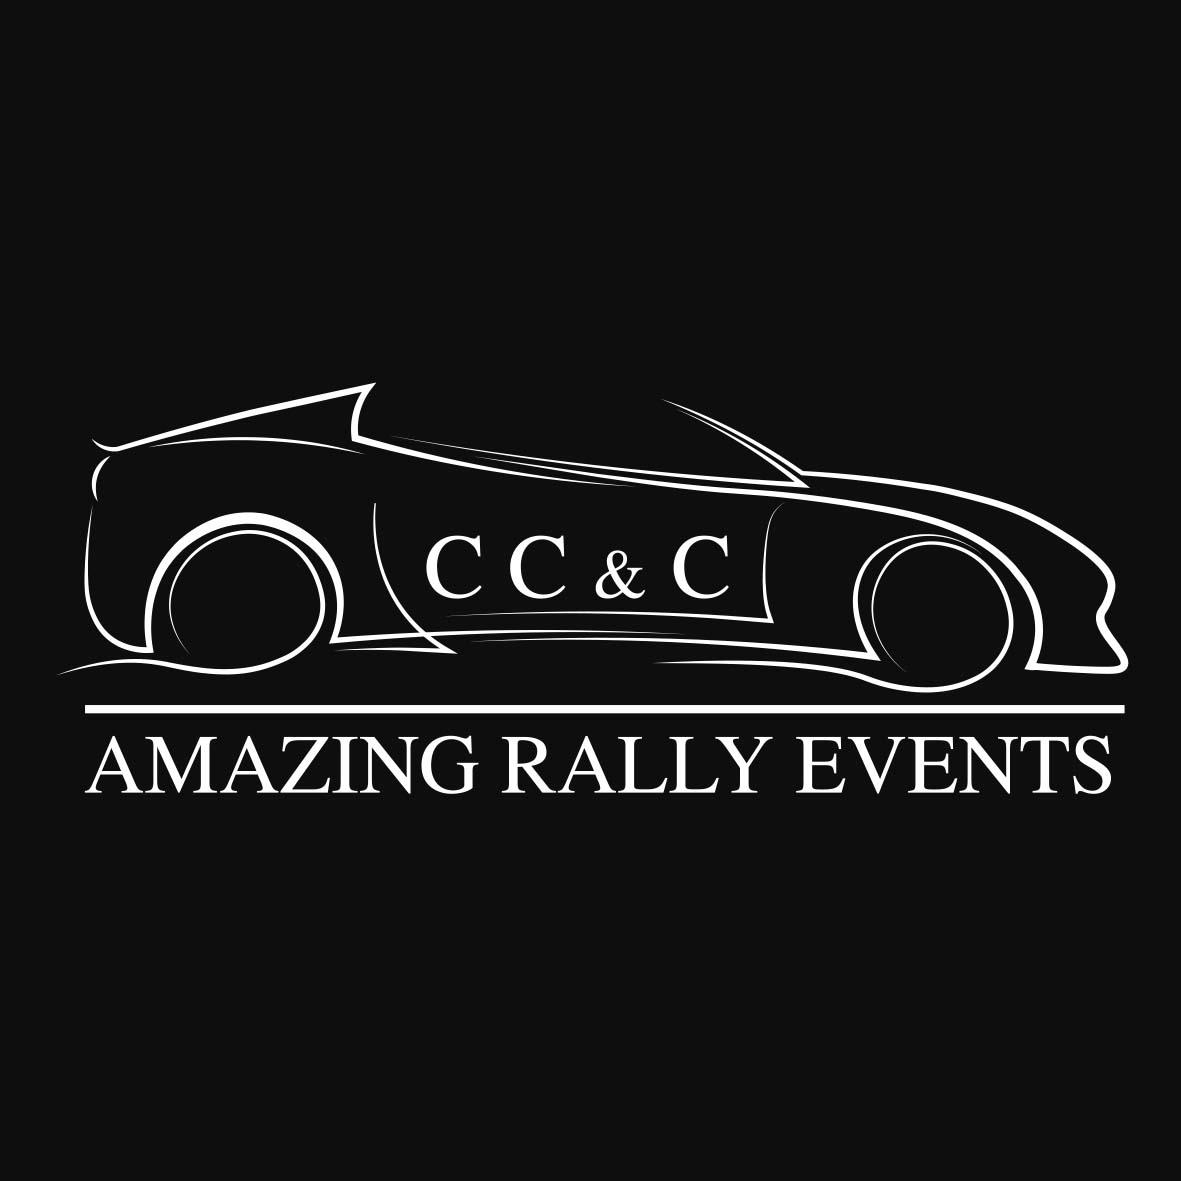 CCC-Rally Cool, Cabrio, Classic Car Rally Events